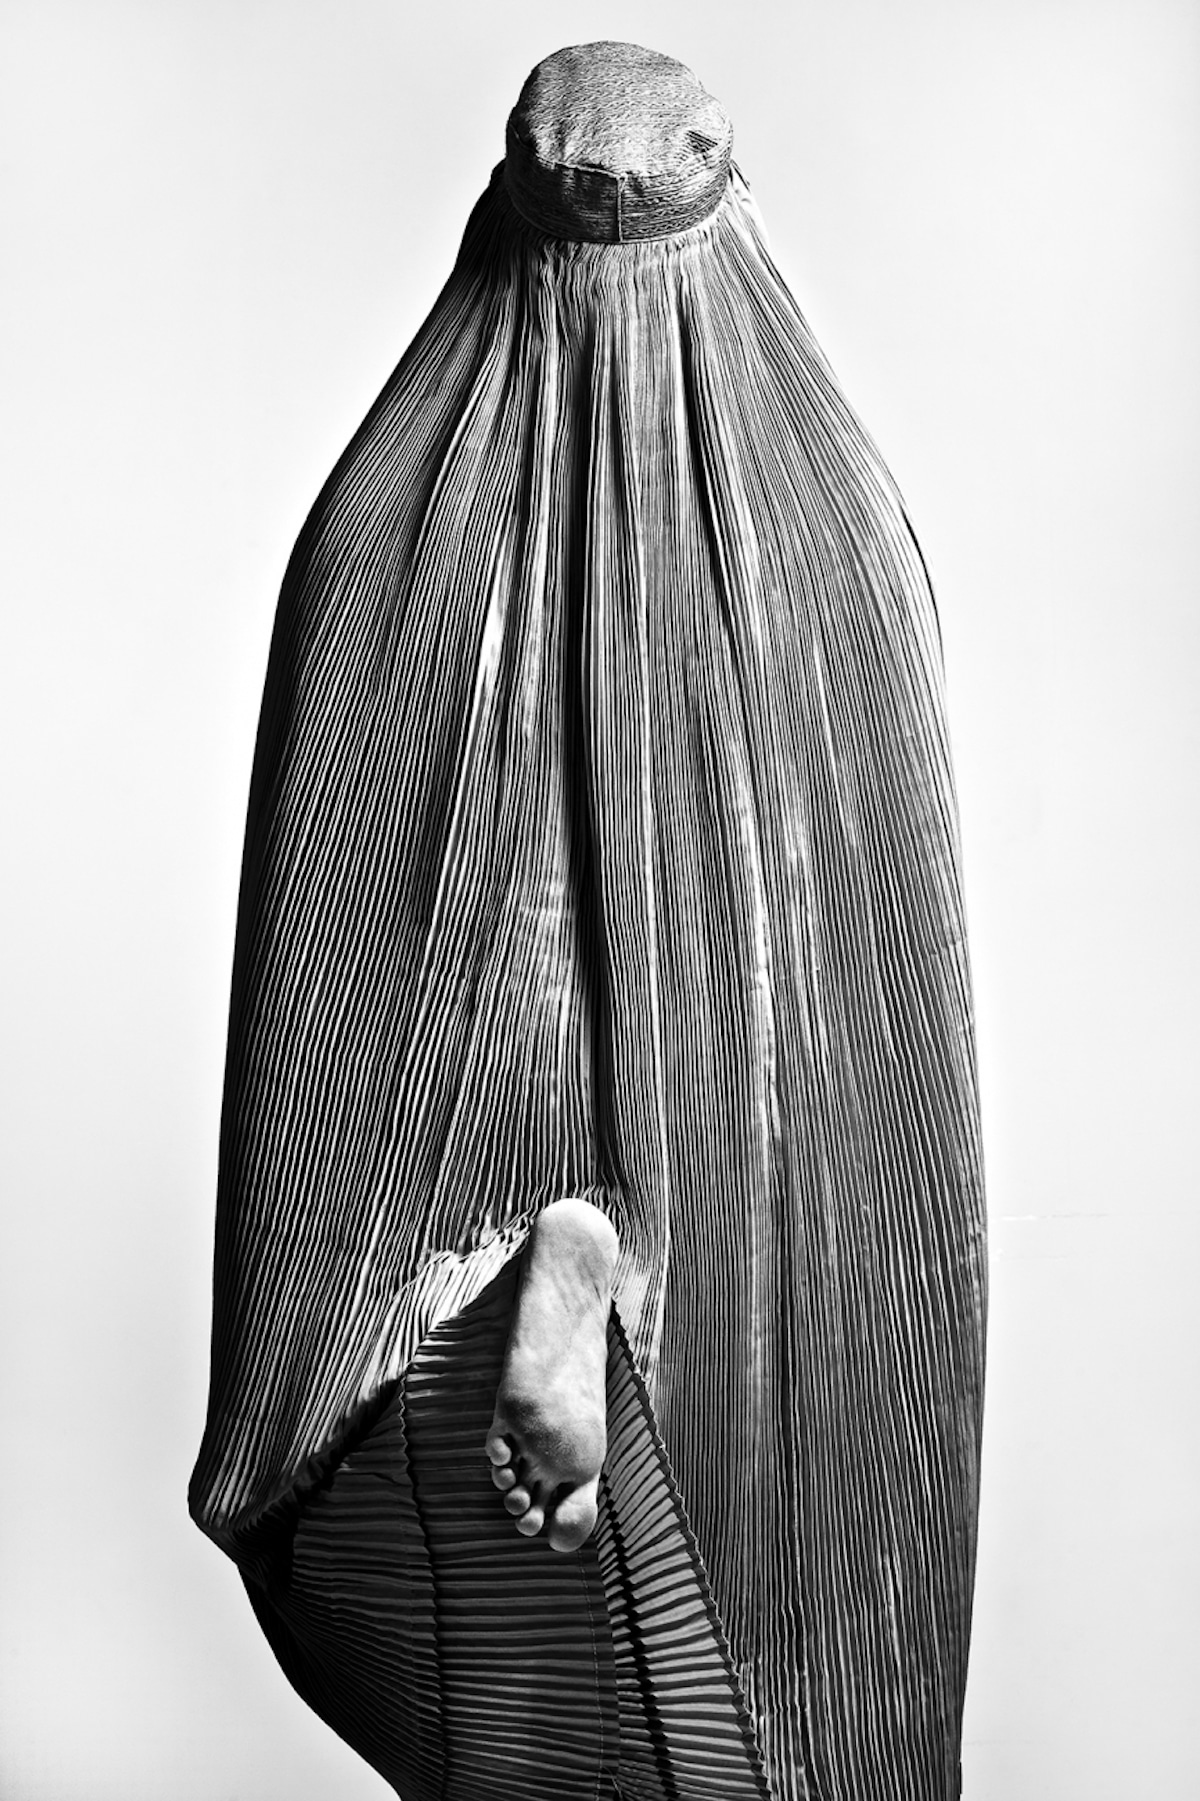 Black and White Photo of an Iranian Woman in a Burka